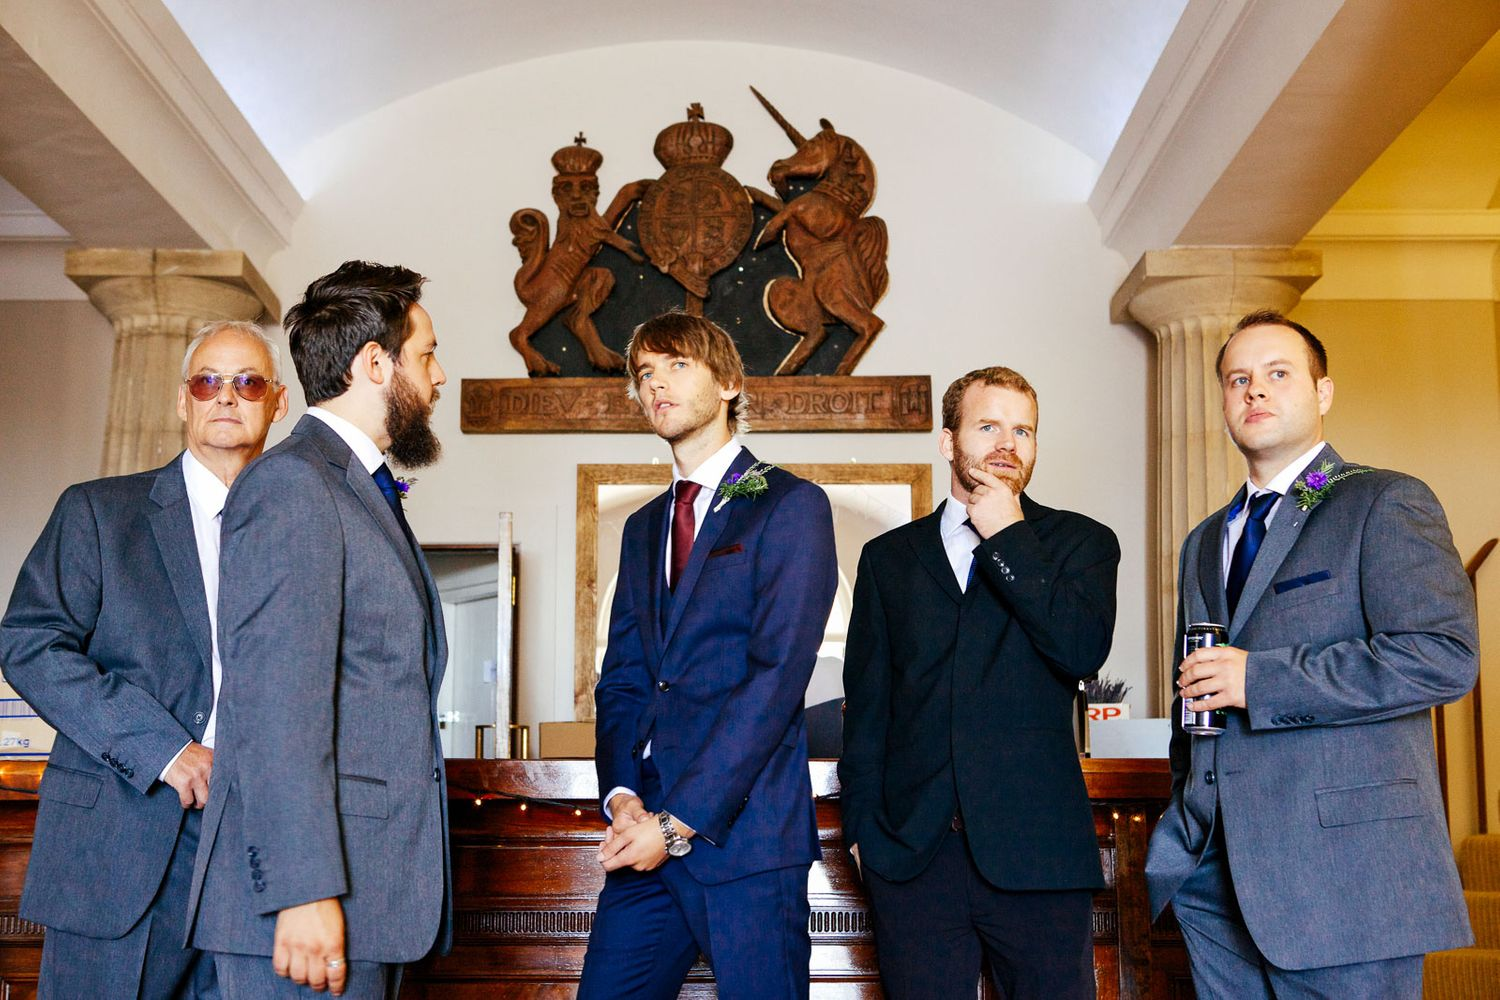 natural photography of groomsmen by Tuscany based wedding photographer